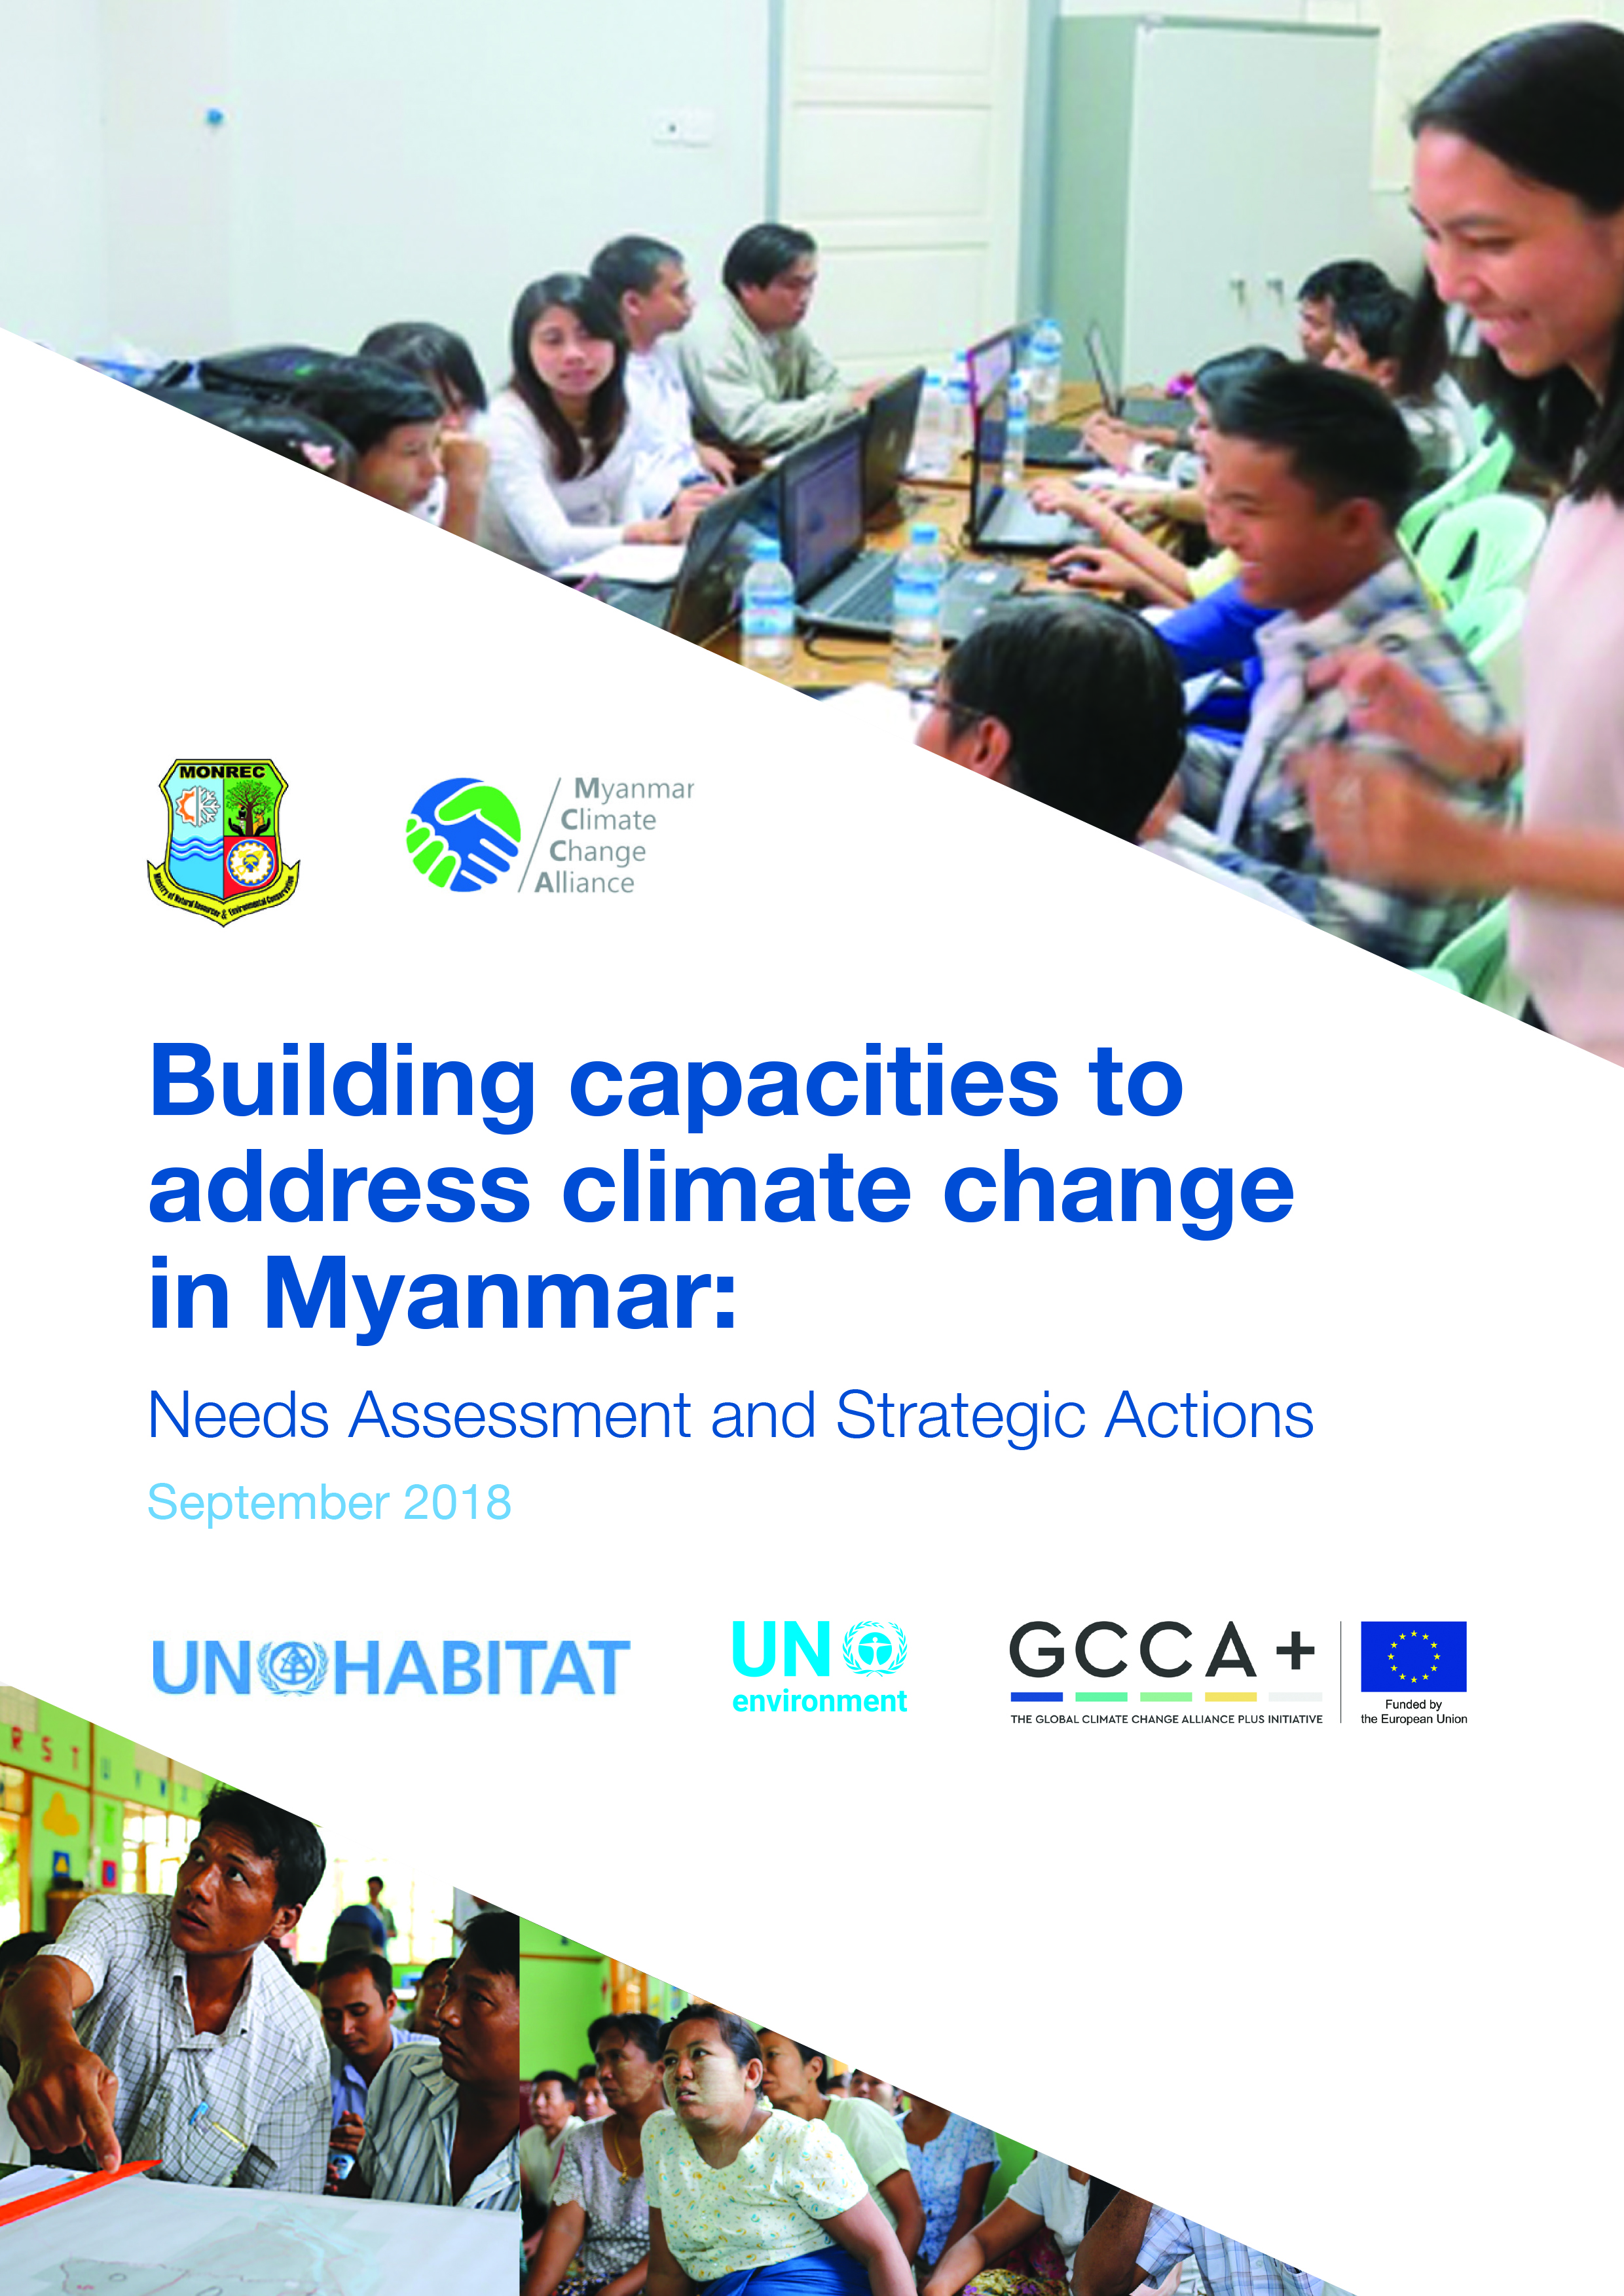 Building capacities to address climate change in Myanmar